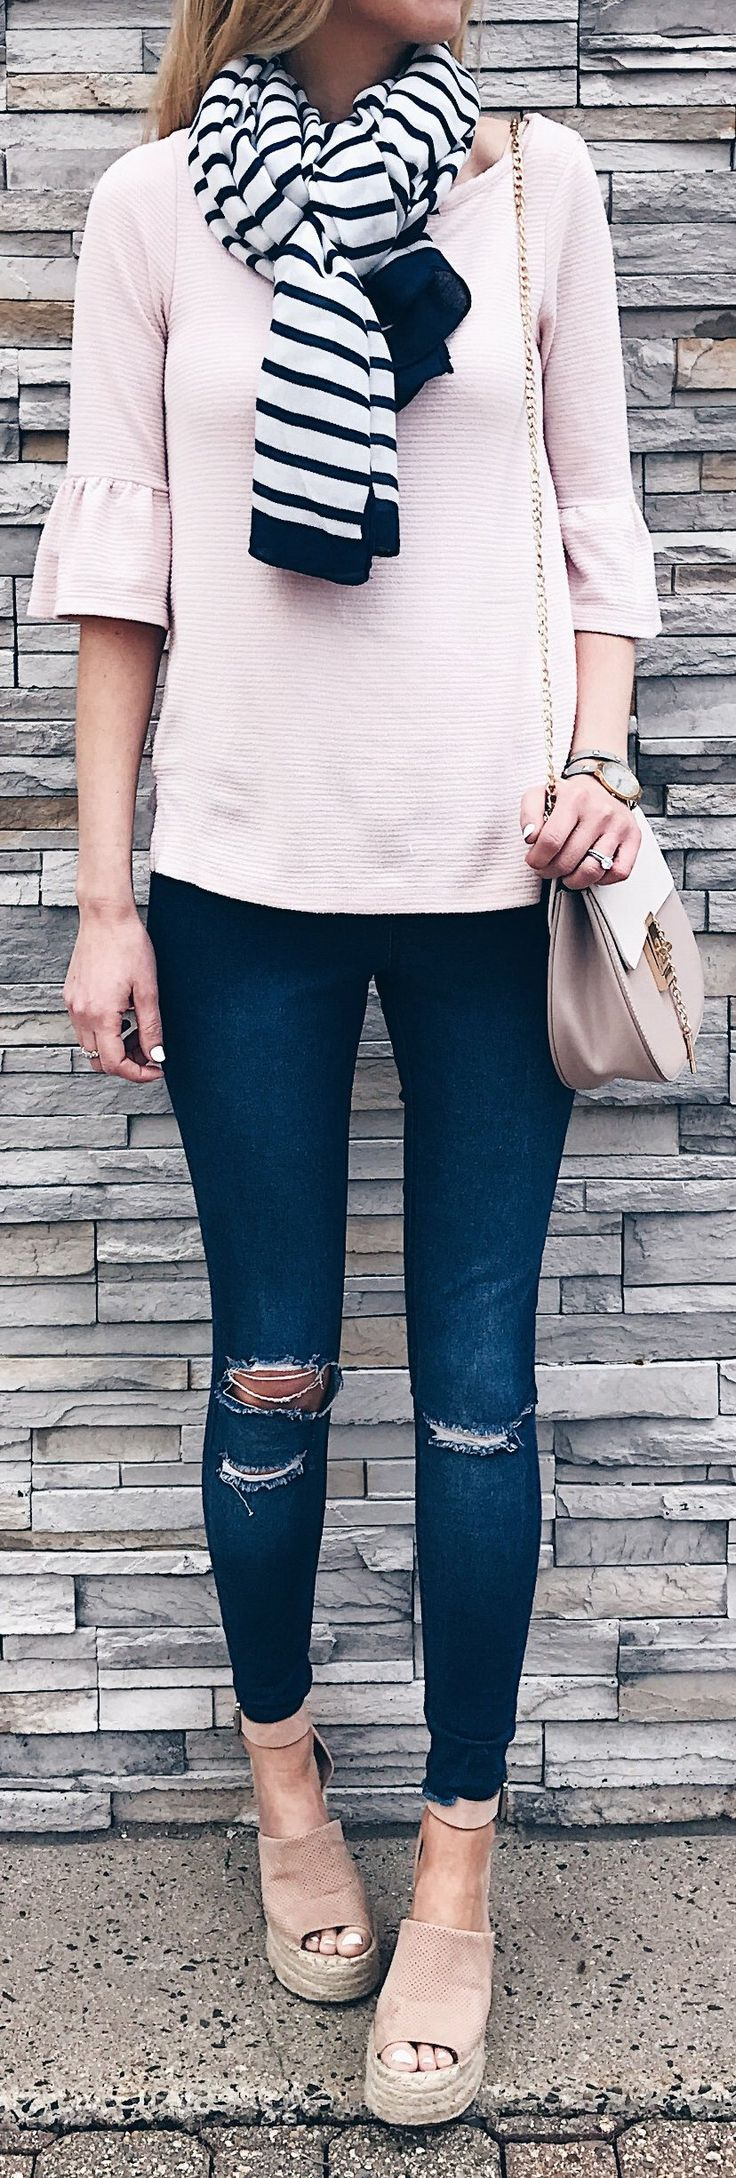 #spring #outfits  Do You Wear Makeup To The Gym? I Won't Leave The House Without Undereye Concealer 😳 But My Goal Is Look Alive, Not Made Up. Curious Is Others Are The Same. This Blush Bell Sleeved Top And Blush Wedges Were Just Restocked! My Jeggings Are Only $36. They Run Long But They're Raw Hem So You Could ✂️ Them To Your Preferred Length.